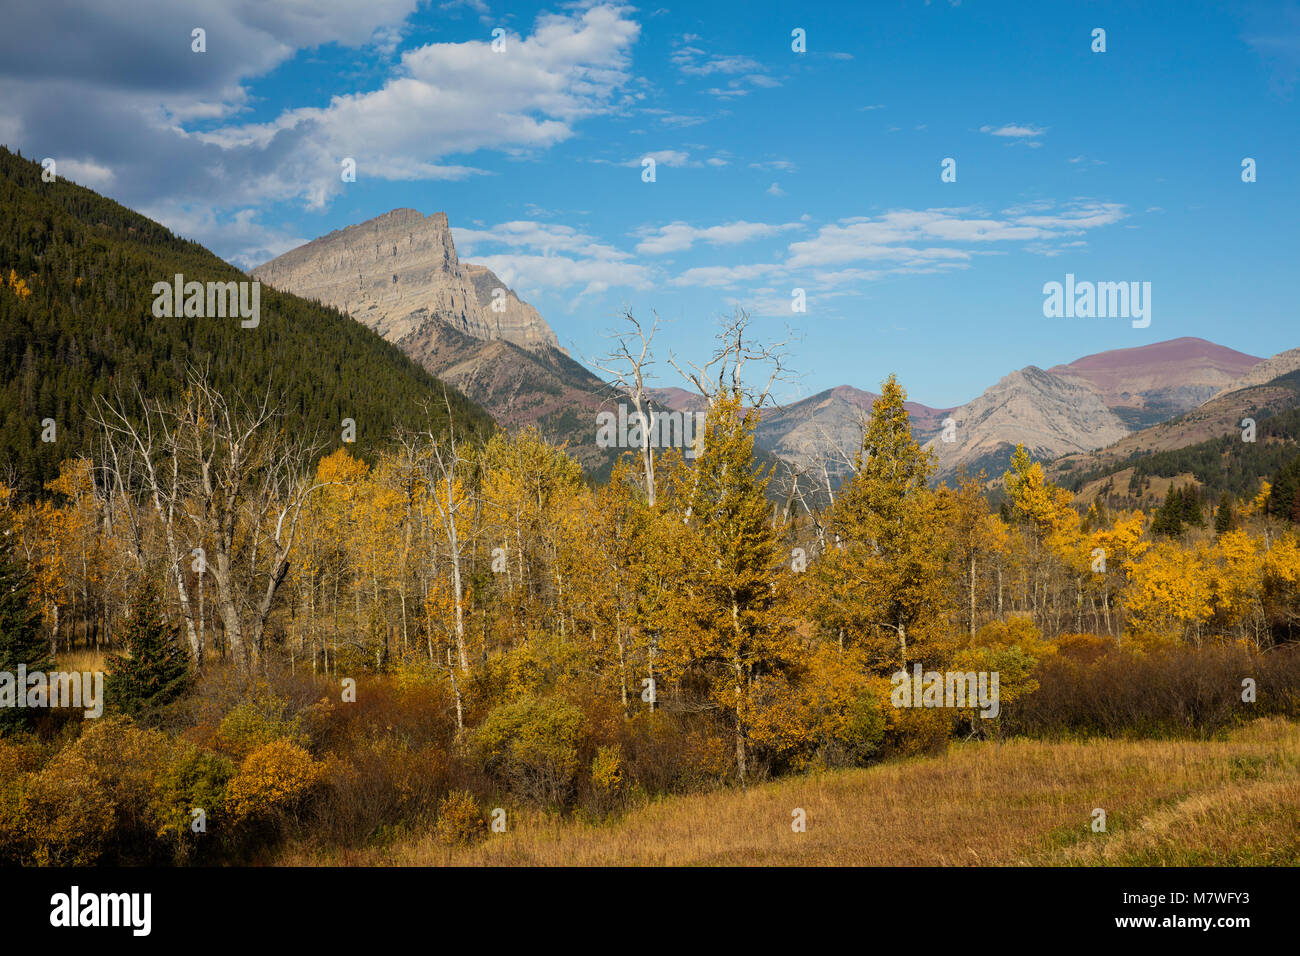 Mount Anderson (Anderson Peak) as seen from the Red Rock Parkway in autumn, Waterton Lakes National Park, Alberta, - Stock Image